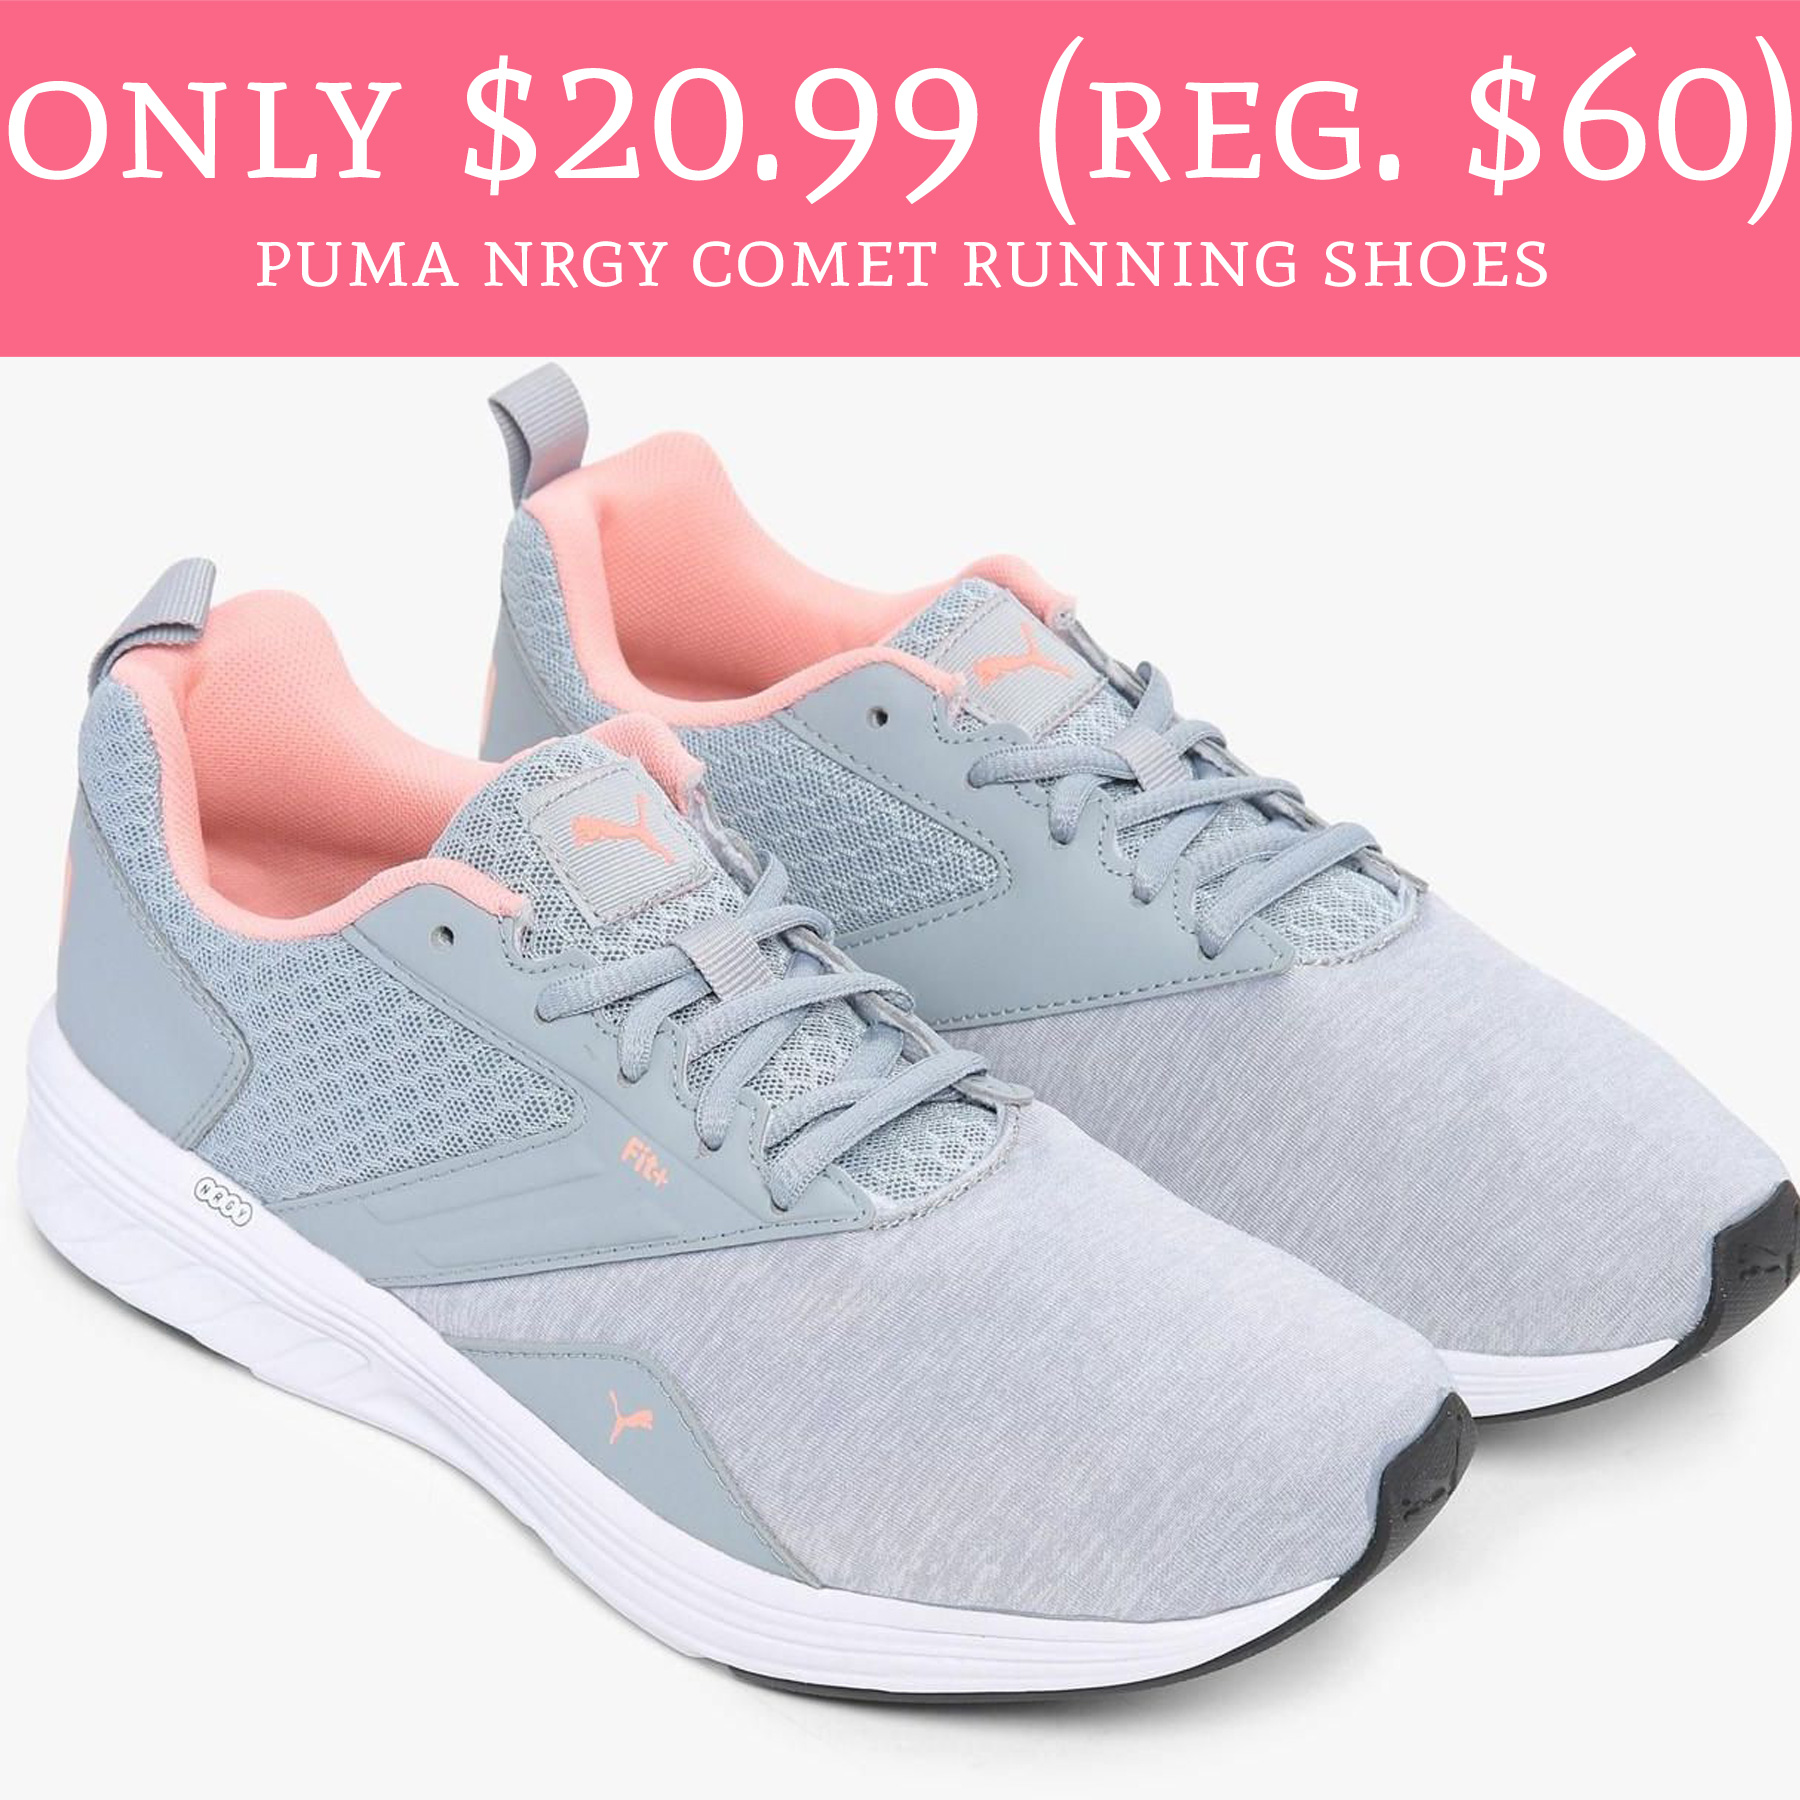 Only $20.99 (Regular $60) Puma Nrgy Comet Running Shoes - Deal ...